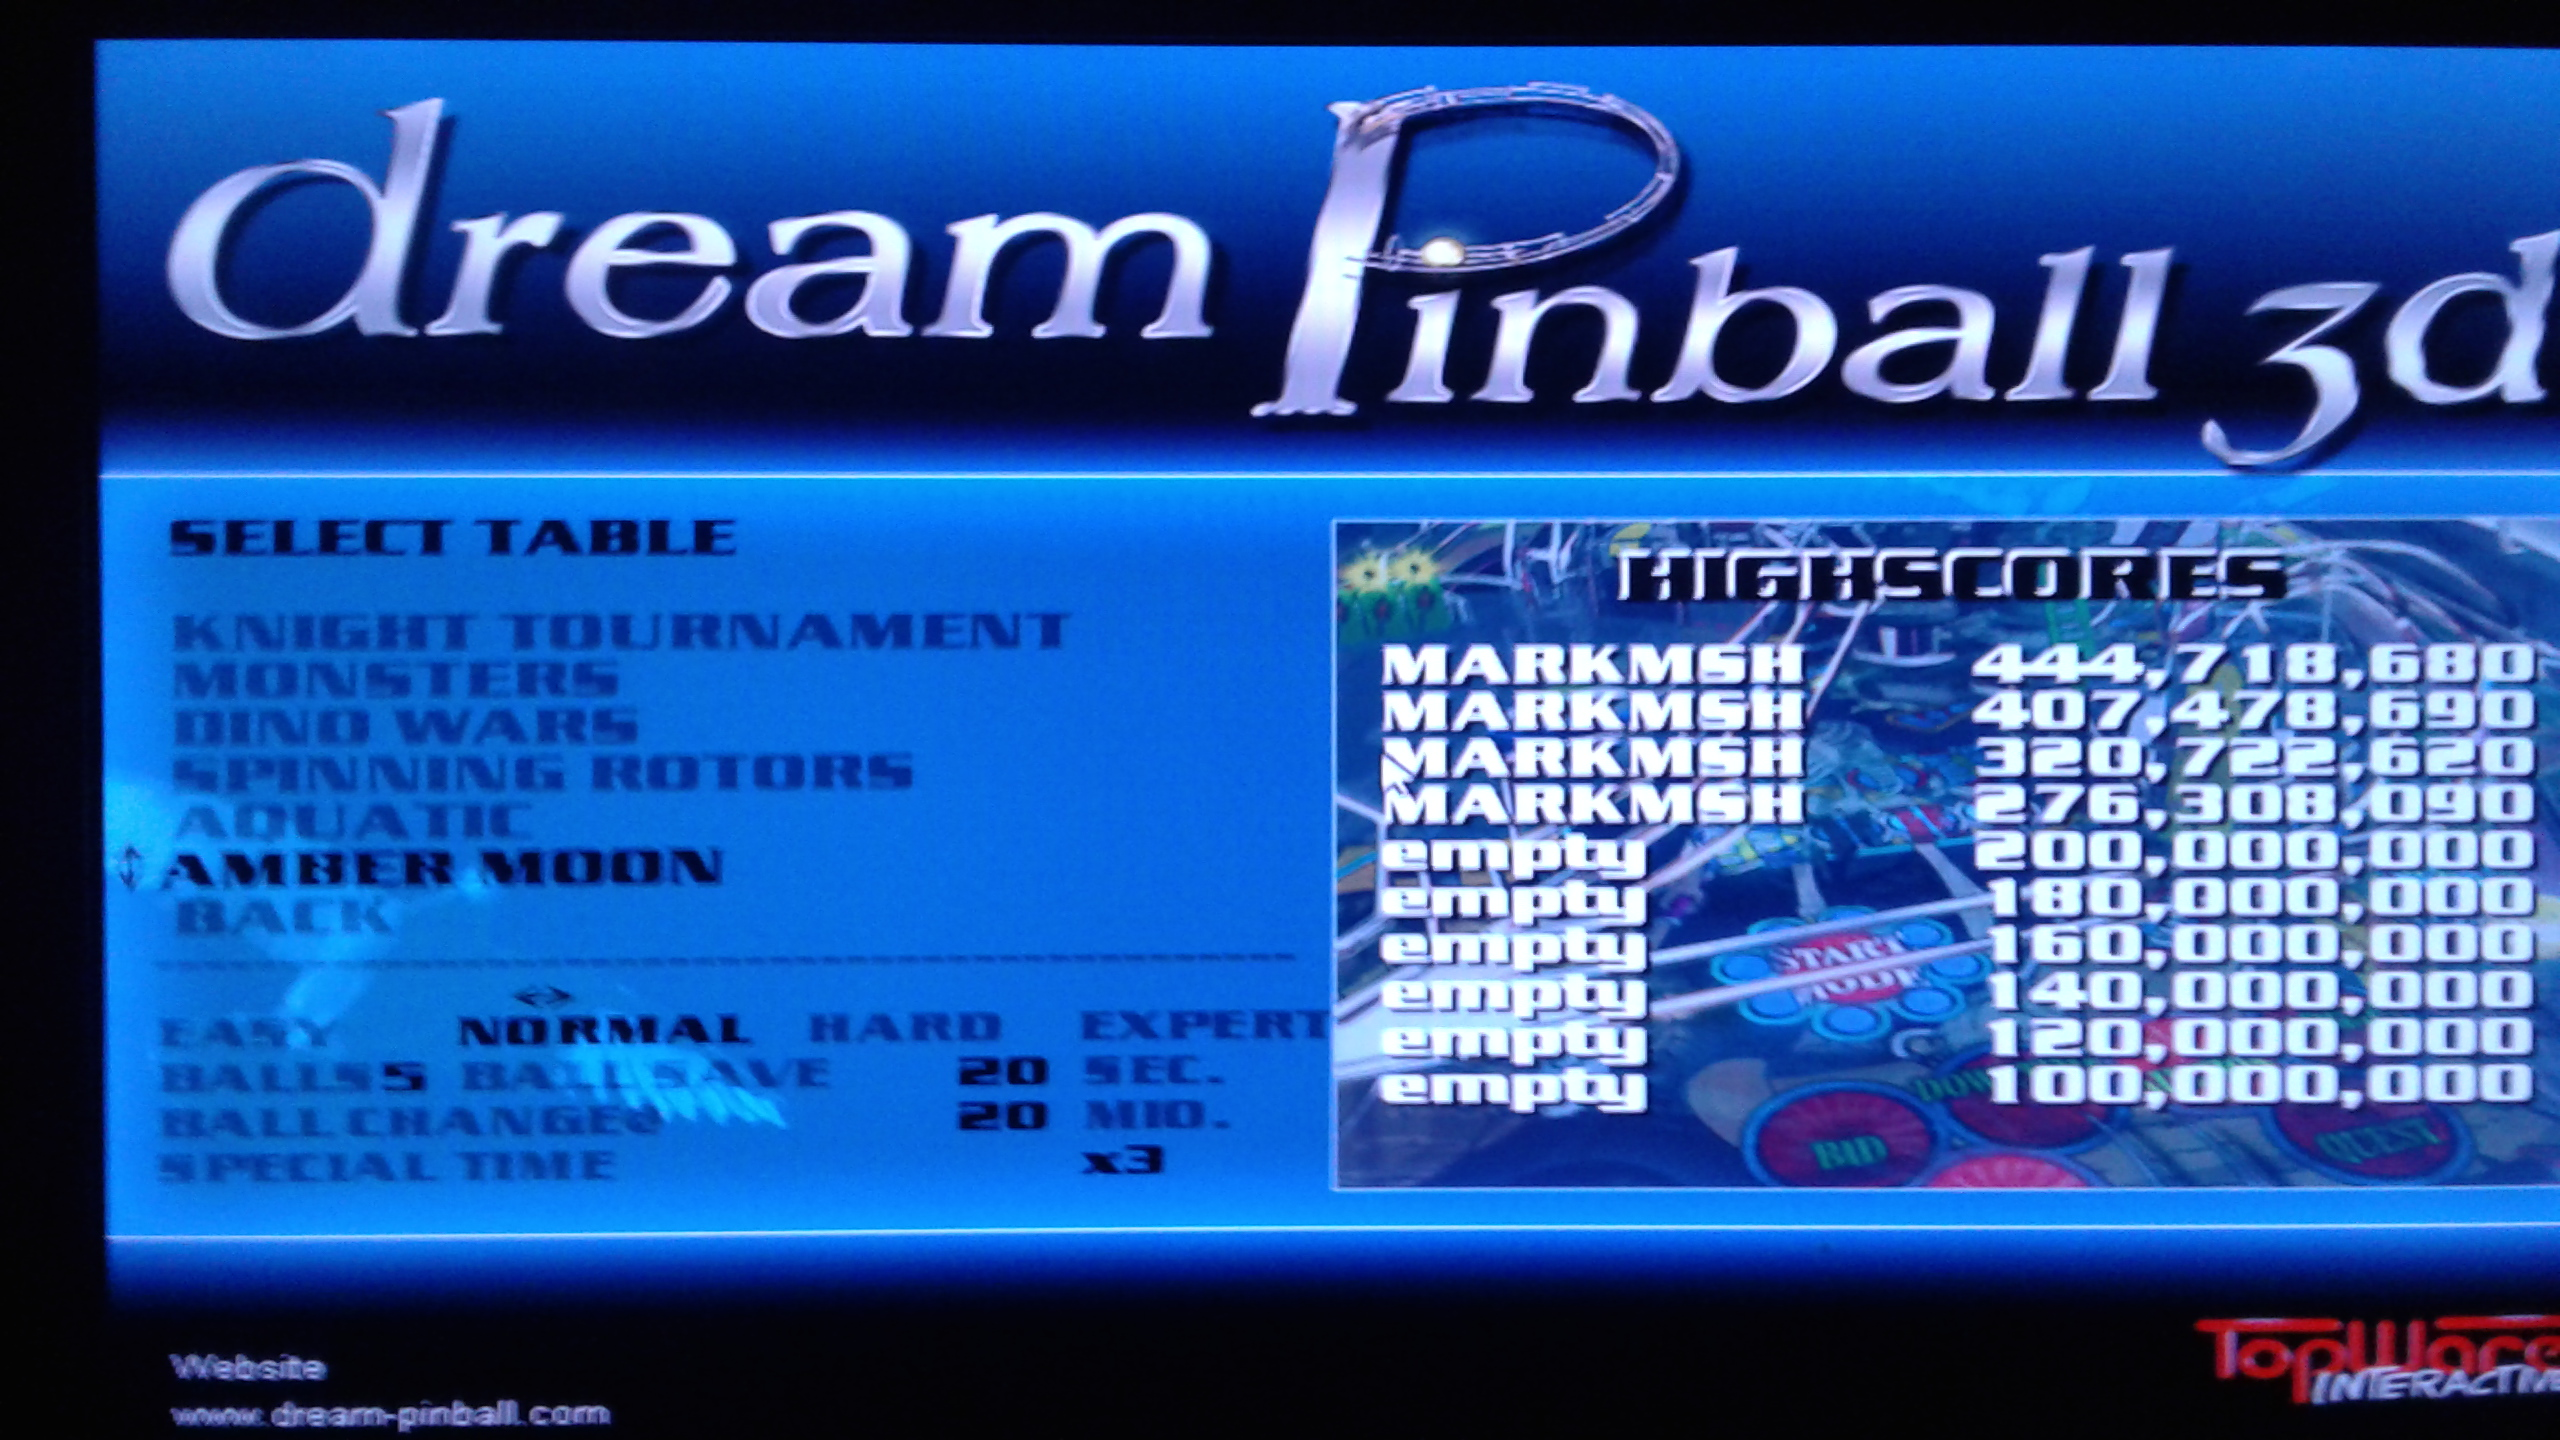 Mark: Dream Pinball 3D: Amber Moon [Normal] (PC Emulated / DOSBox) 444,718,680 points on 2019-05-17 01:02:39